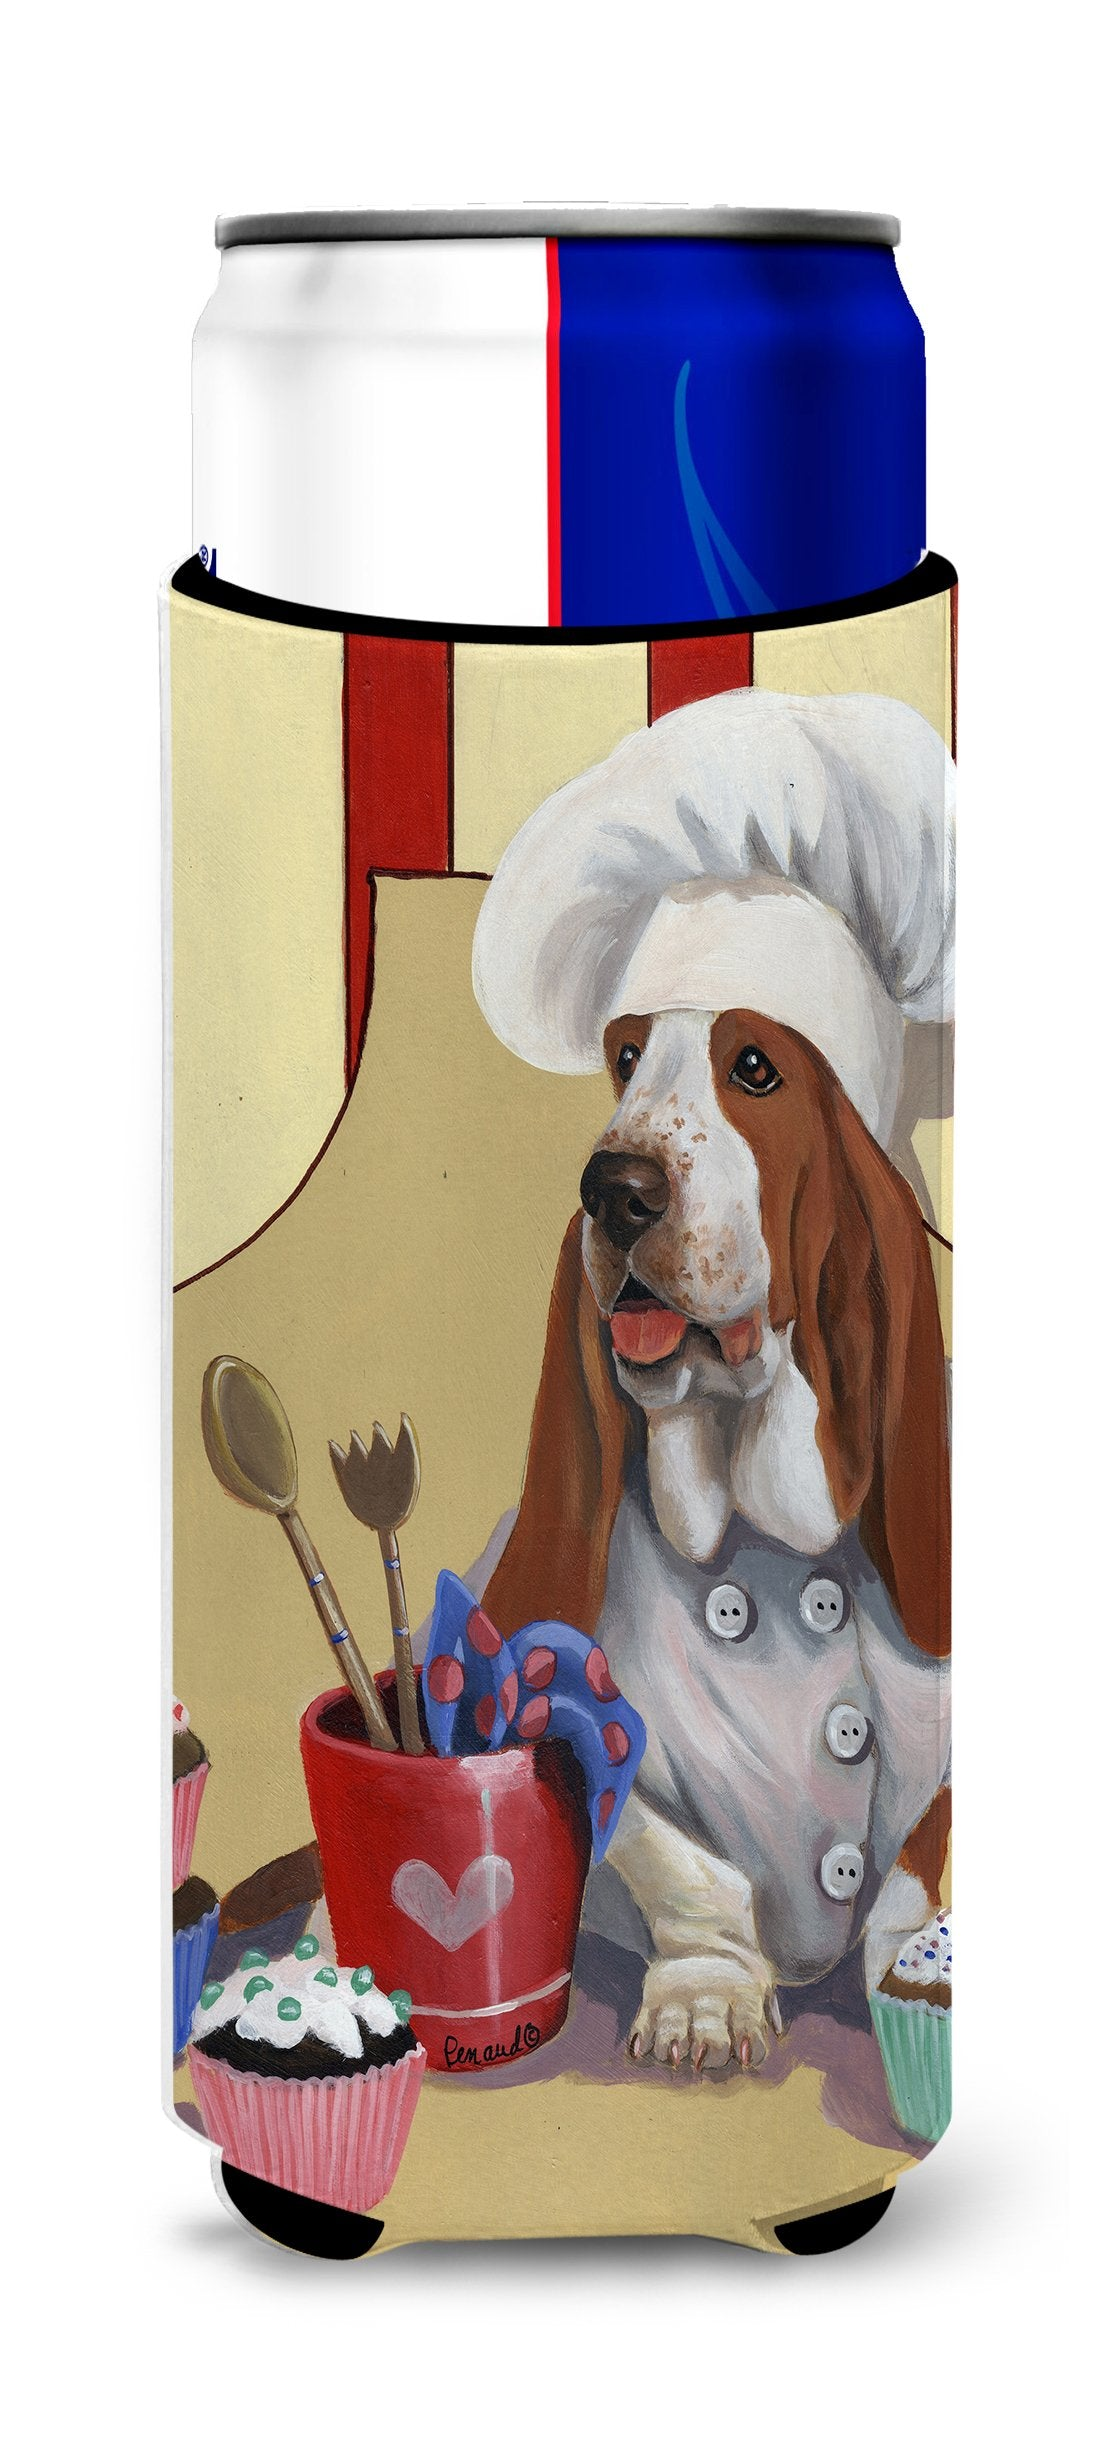 Basset Hound Cupcake Hound Ultra Hugger for slim cans PPP3011MUK by Caroline's Treasures